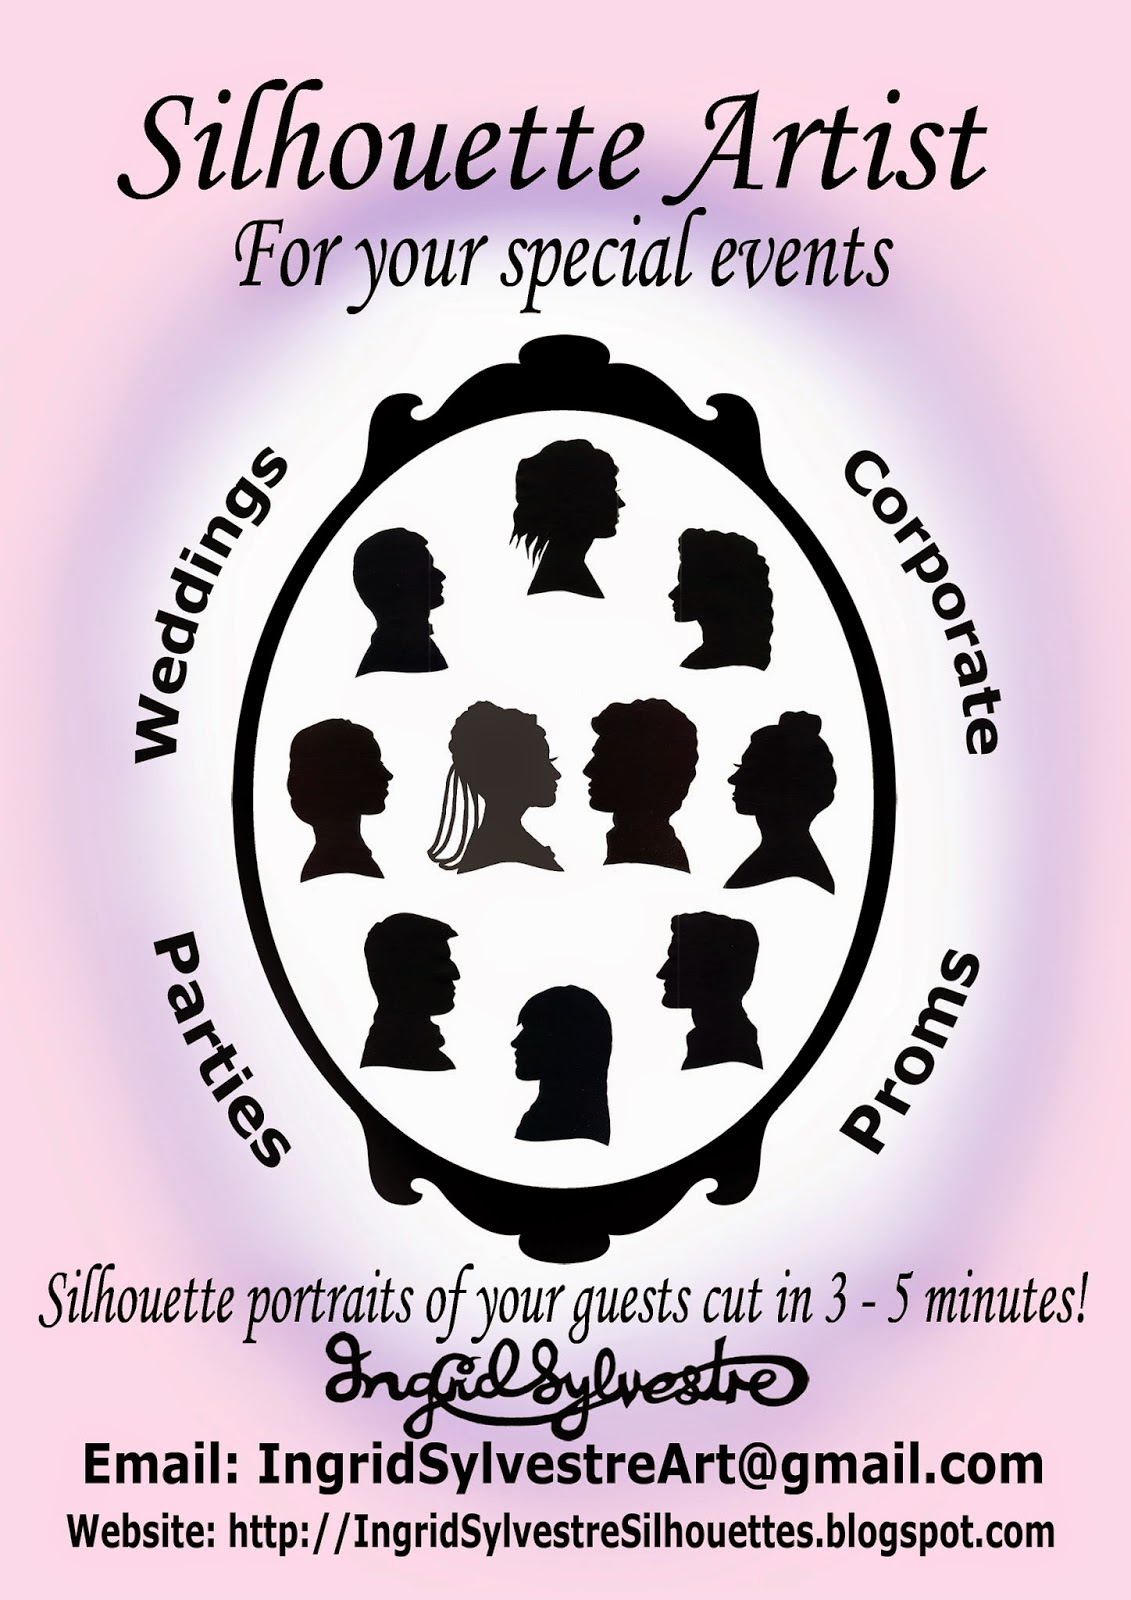 North East Wedding Entertainment ideas Wedding Silhouettes Wedding ideas Wedding planning Gay Wedding ideas Gay Wedding entertainment Gay Wedding Party entertainment ideas Corporate event entertainment ideas Newcastle upon Tyne Durham Sunderland Teesside Northumberland Yorkshire Ingrid Sylvestre silhouette artist UK